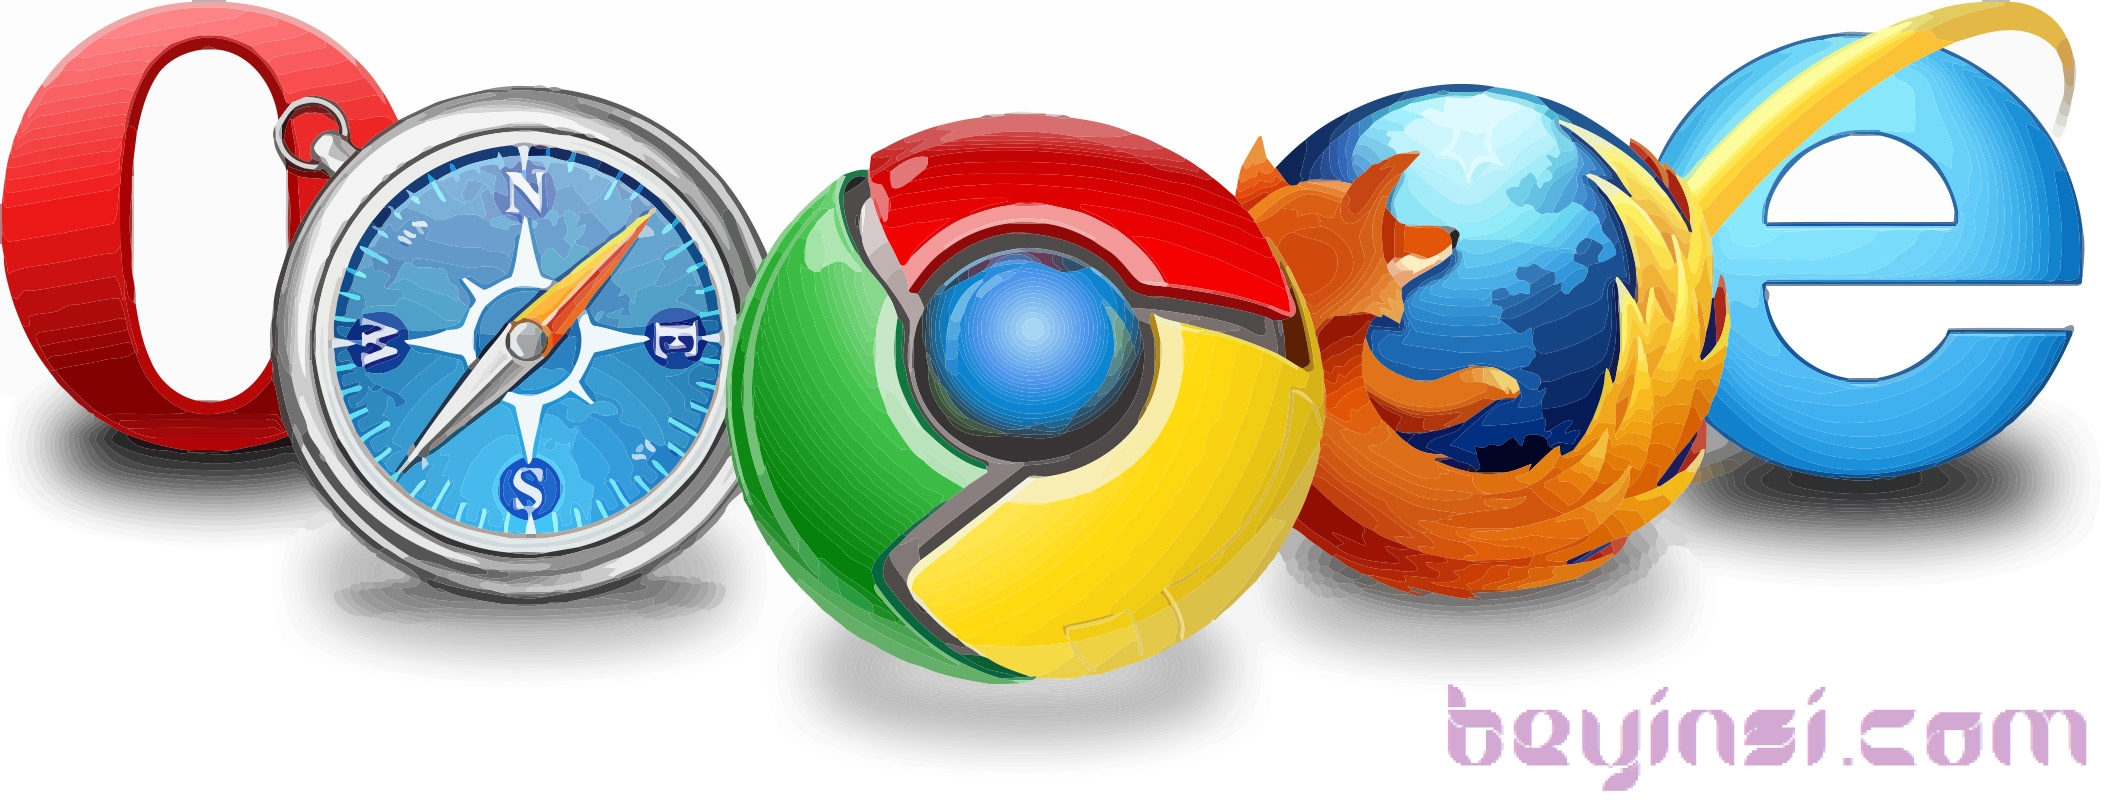 browsers copy